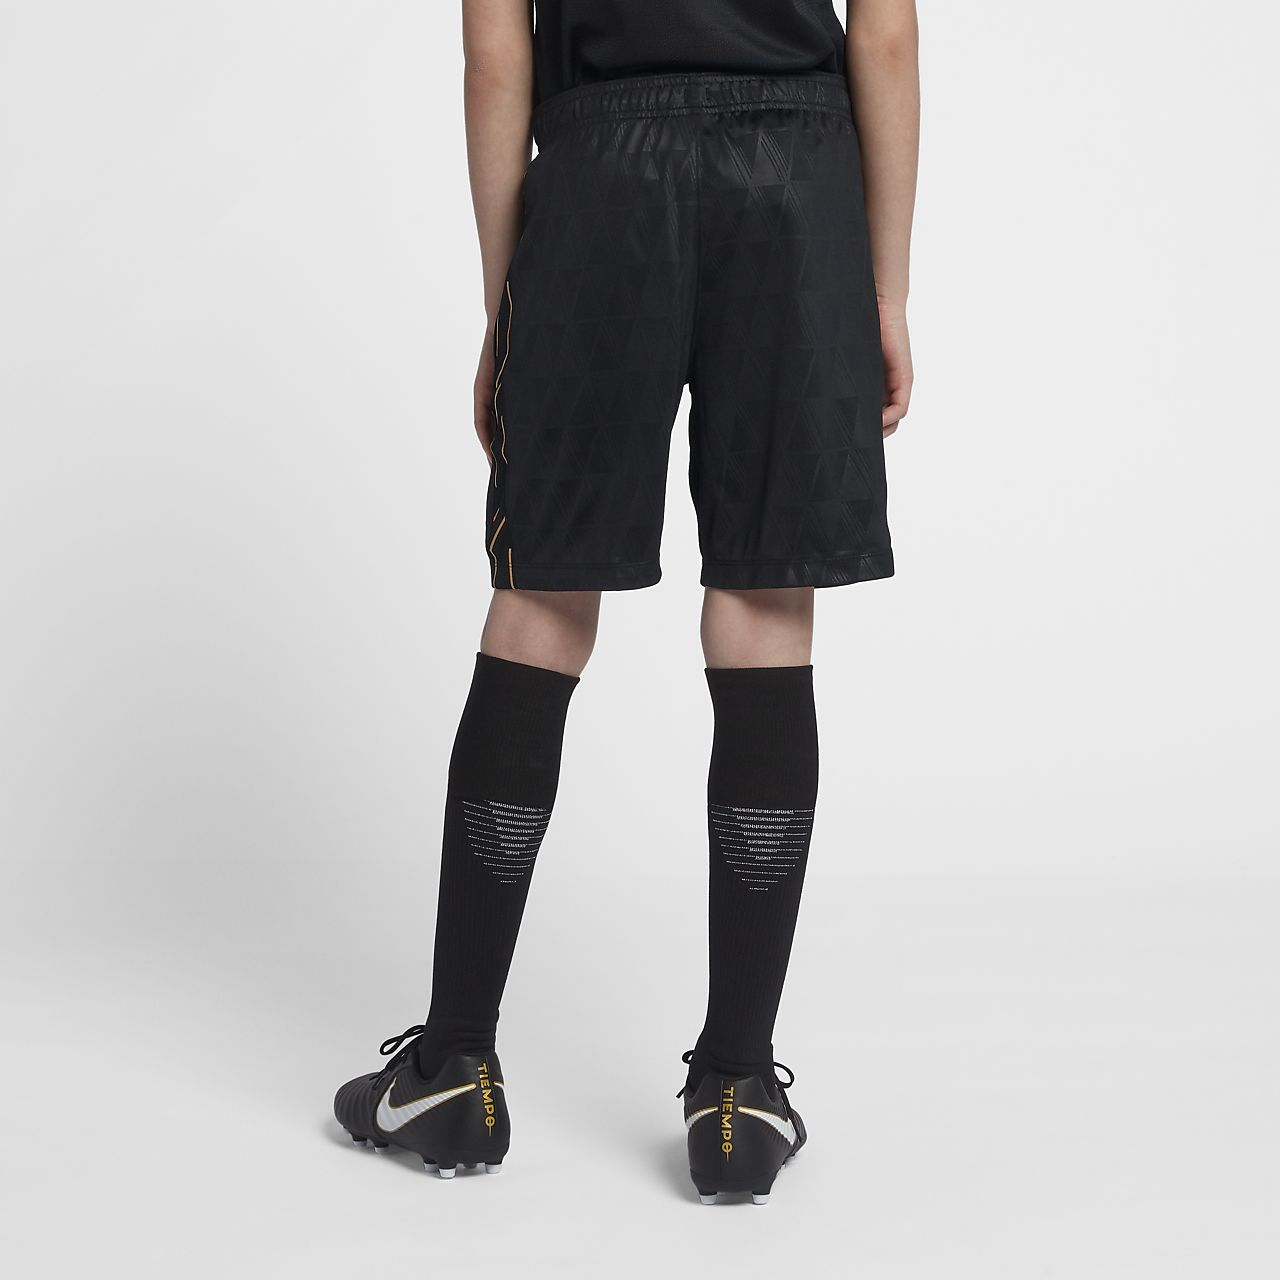 25da0588d152 Nike Dri-FIT Academy CR7 Older Kids' (Boys') Football Shorts. Nike ...